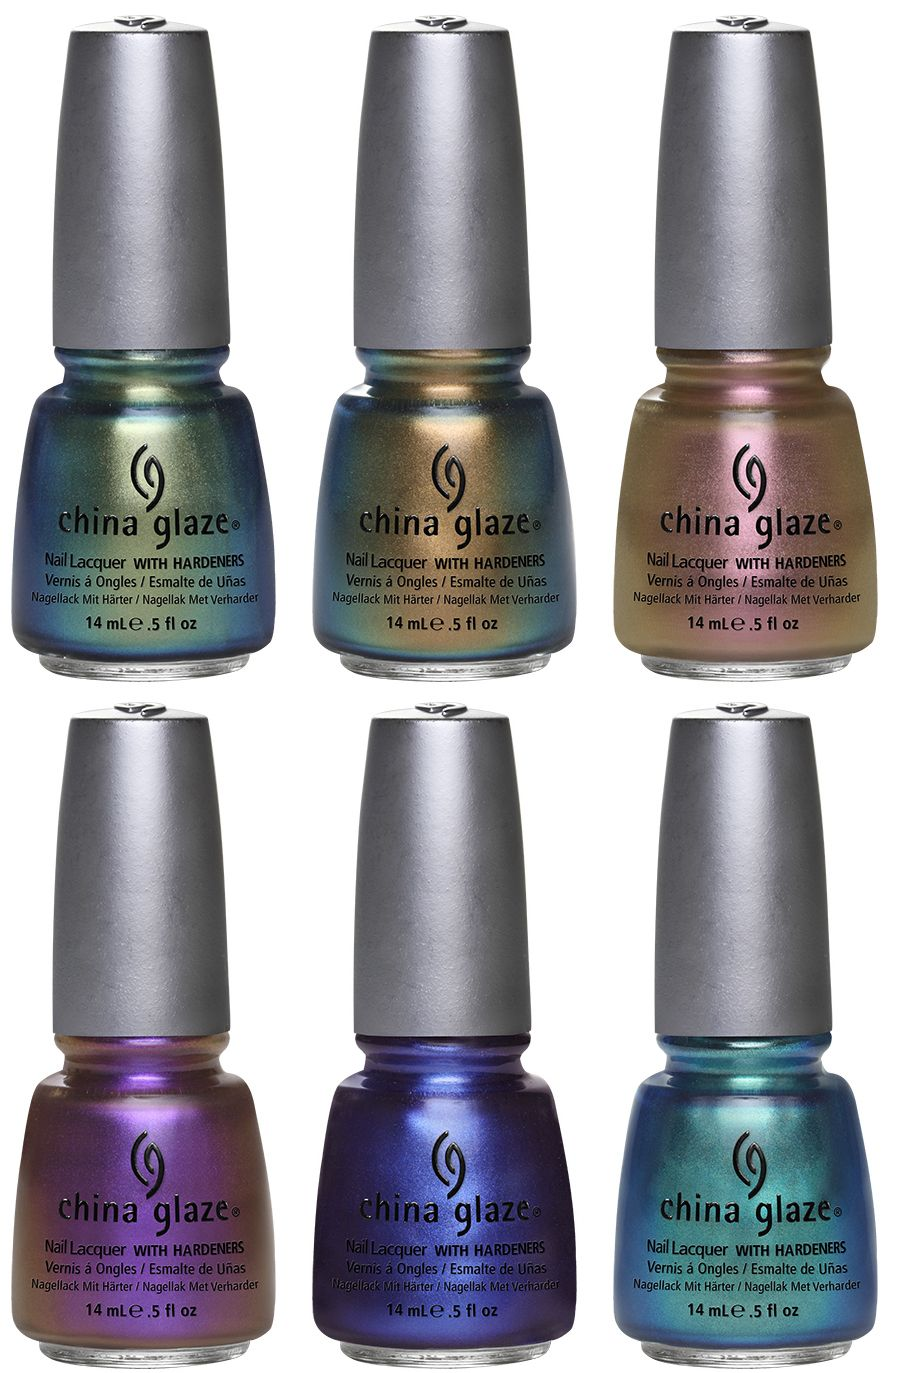 China Glaze is definitely one of our top nail polish brands around ...